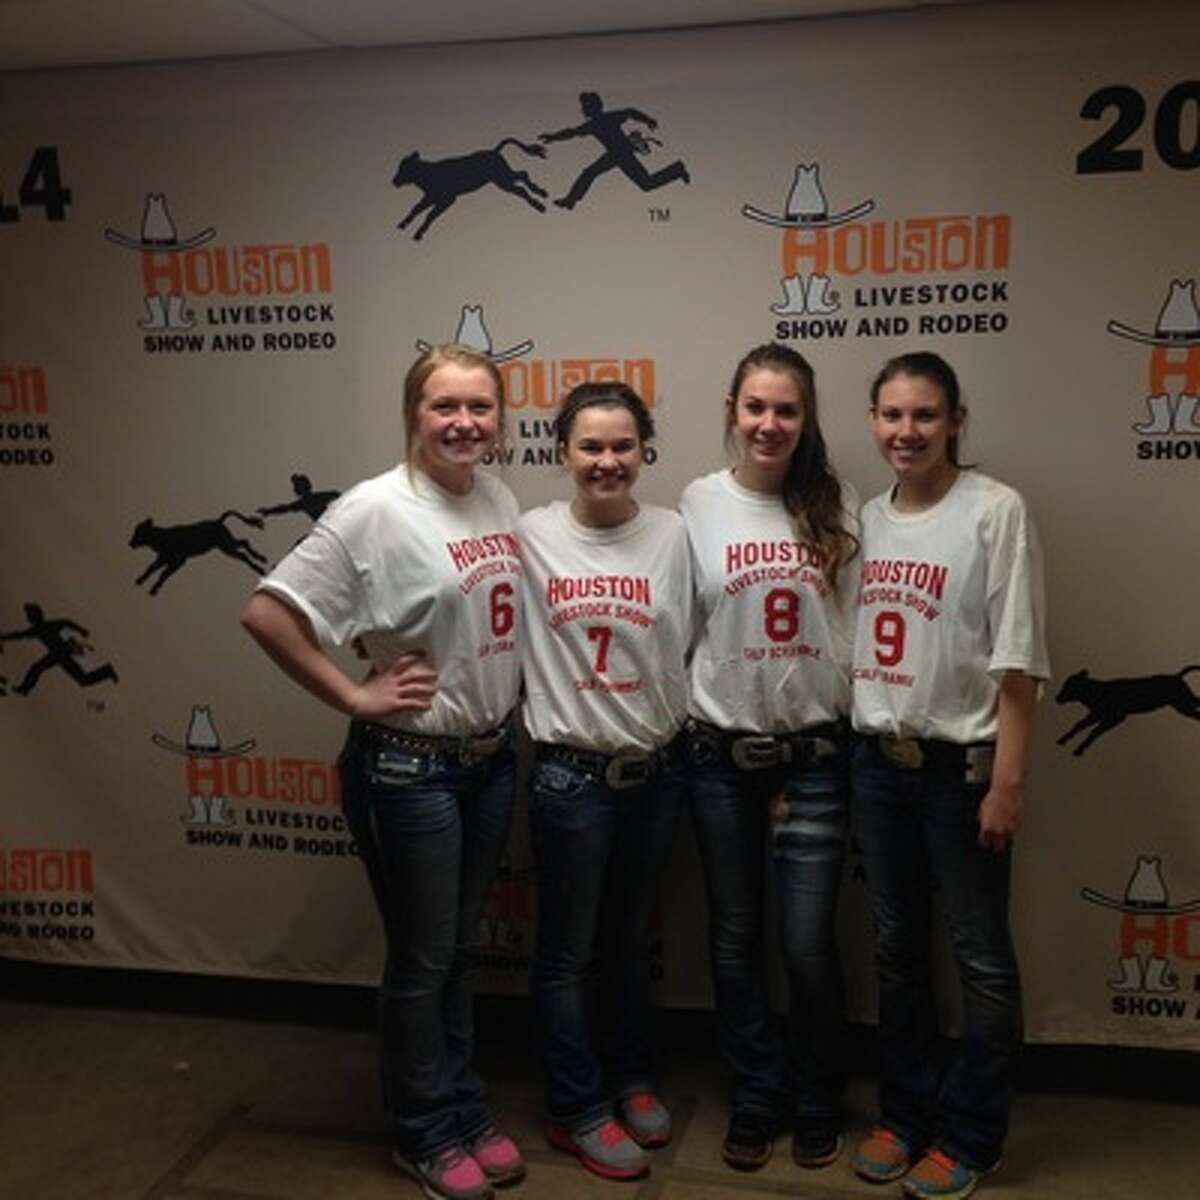 Bailey Beken, from left, Blair Allen, Courtney Smith and Shelby Smith